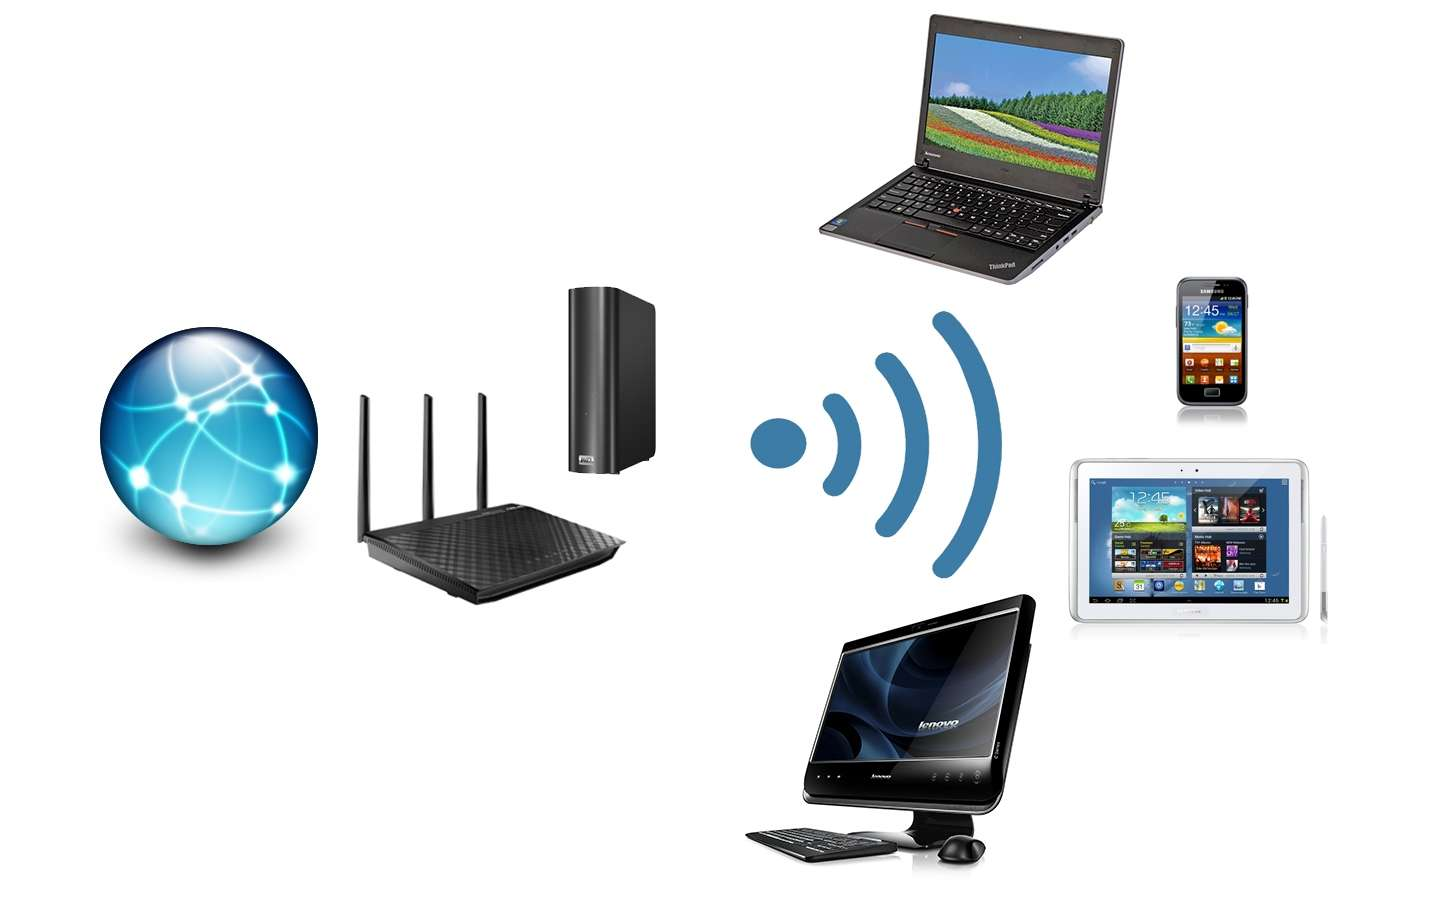 Wireless Devices To Make Your Life Easier